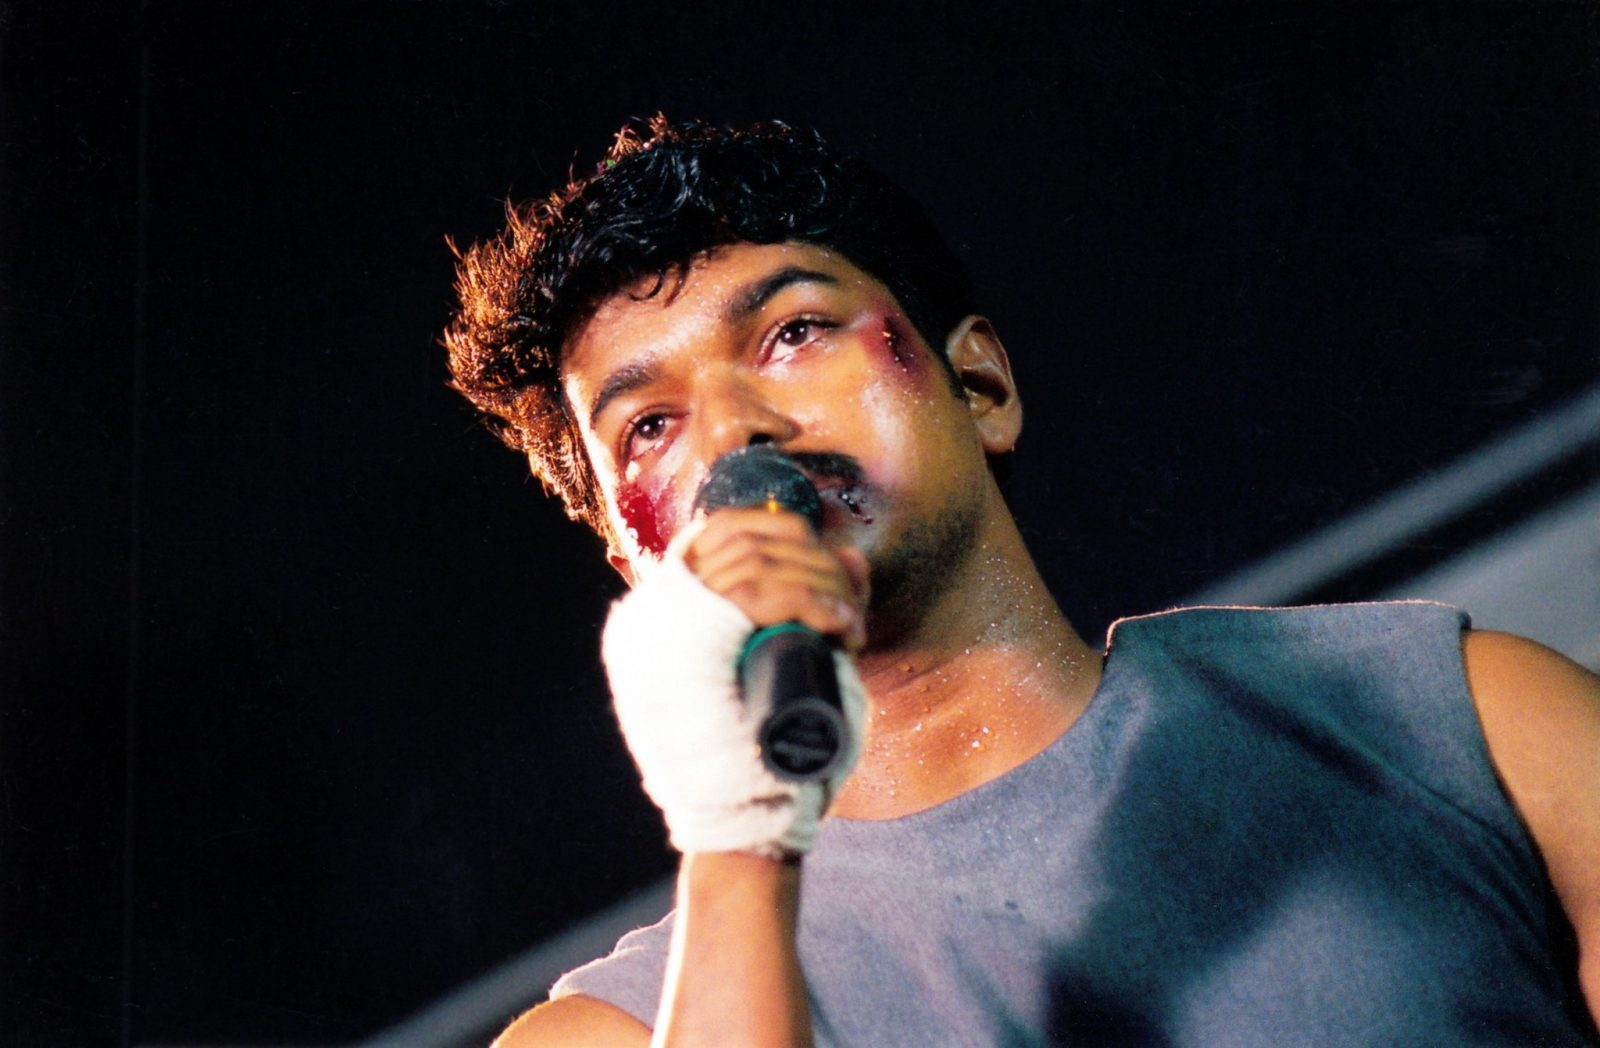 Rare hd photos of thalapathi vijay from various movies 55 photos - Vijay high quality images download ...